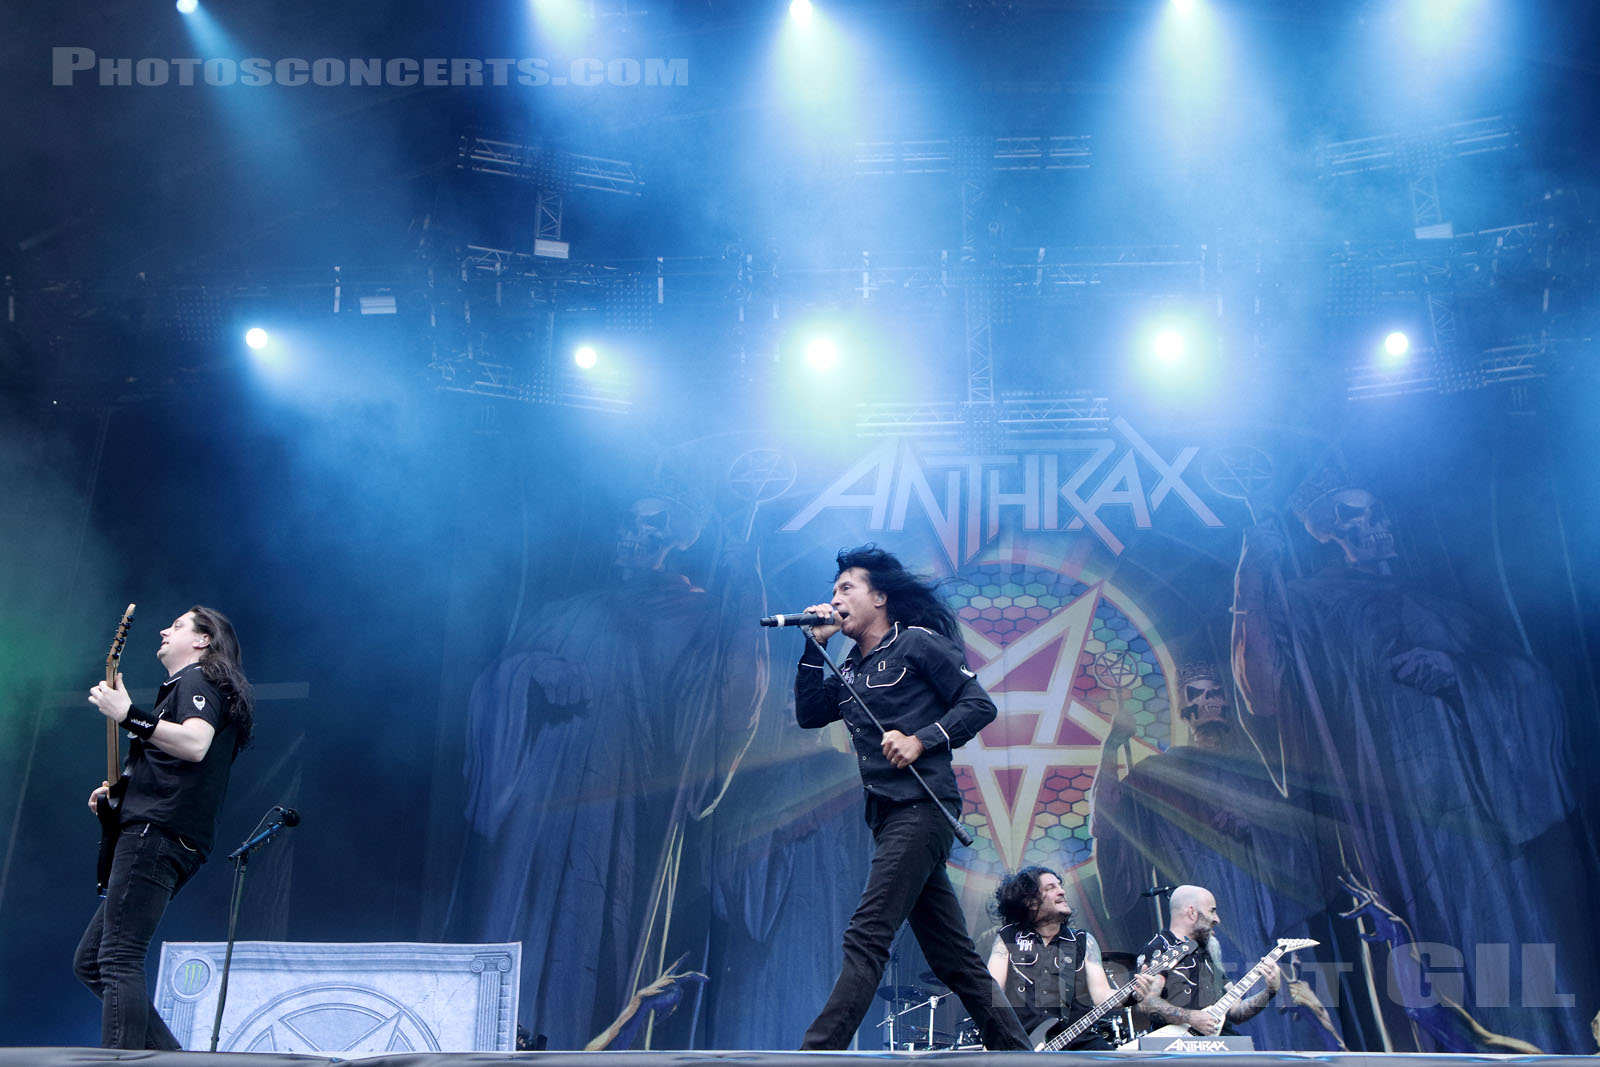 ANTHRAX - 2016-06-10 - PARIS - Hippodrome de Longchamp - Stage 2